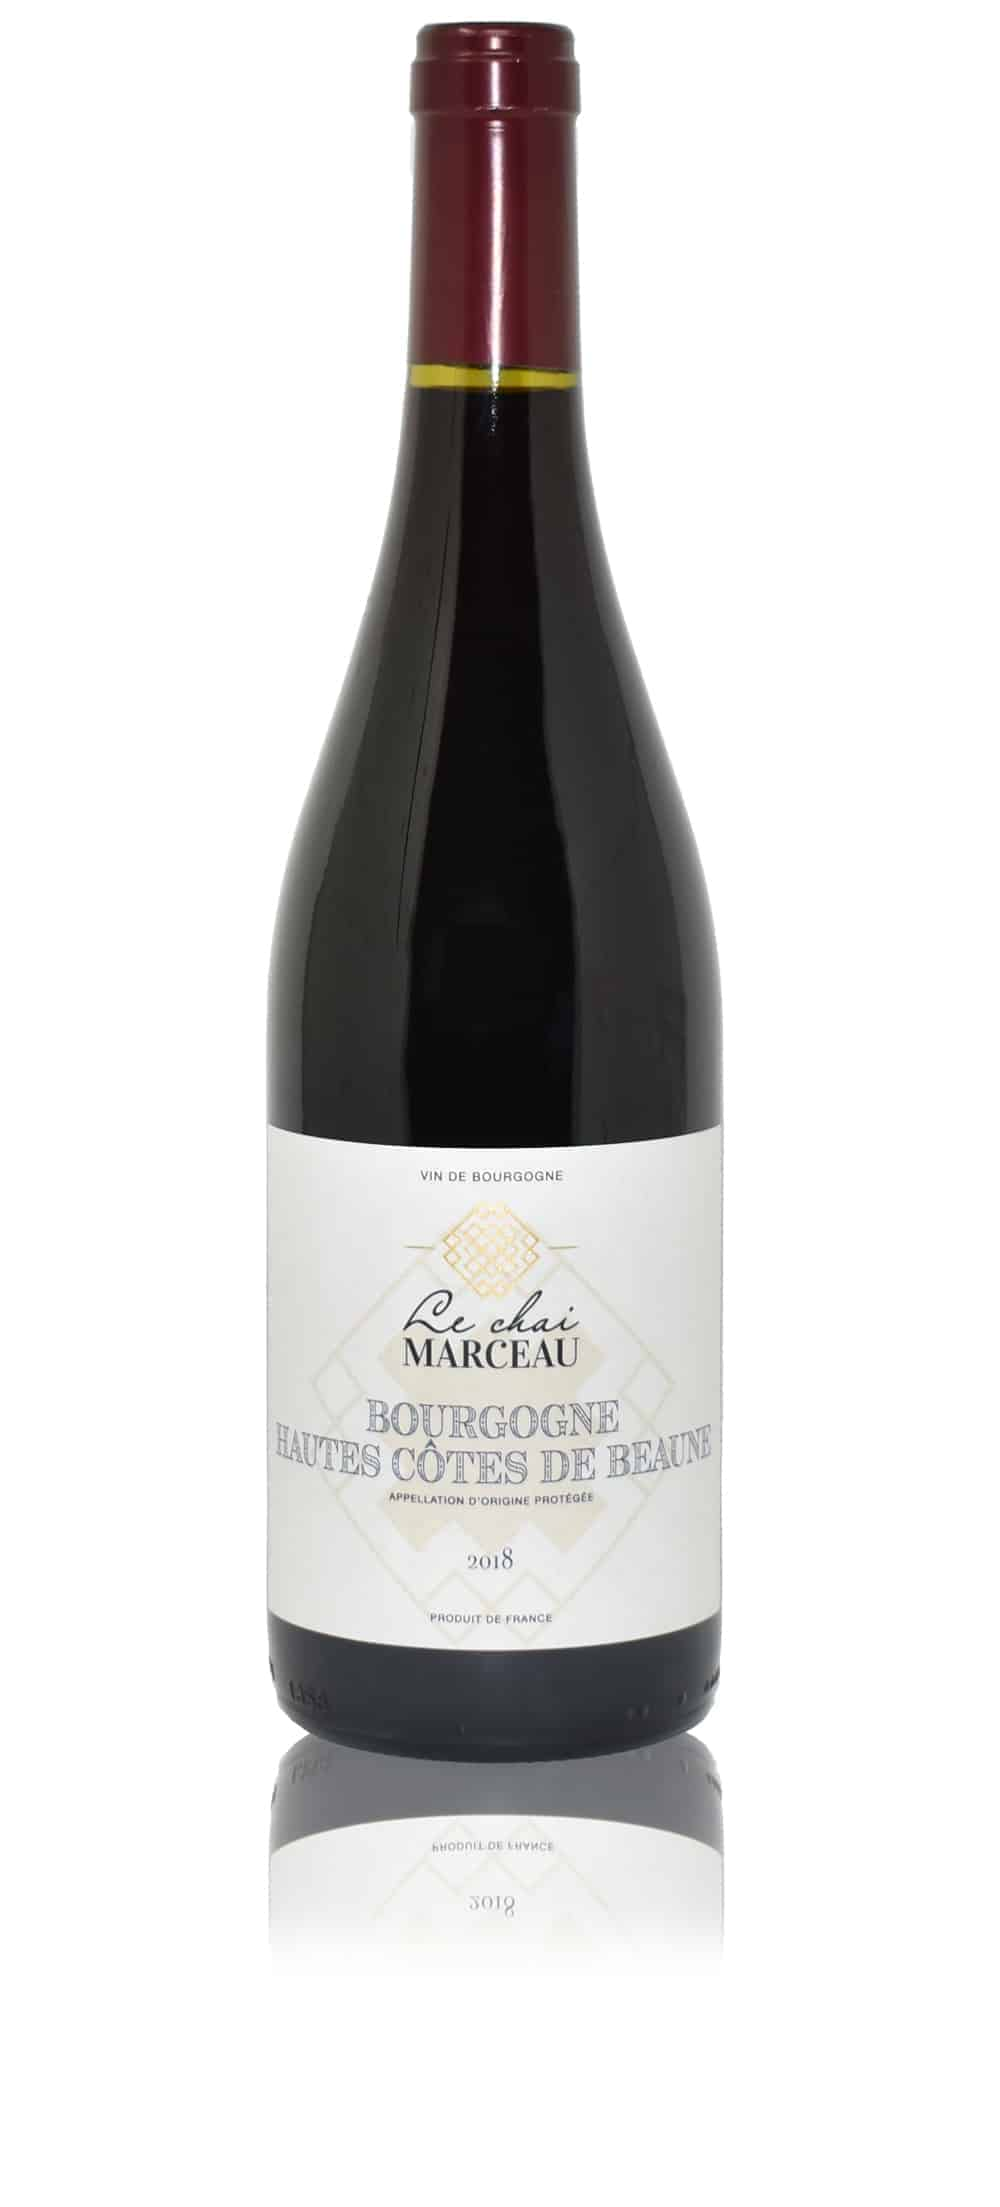 A bottle of Le Chai Marceau Hautes Côtes de Beaune wine